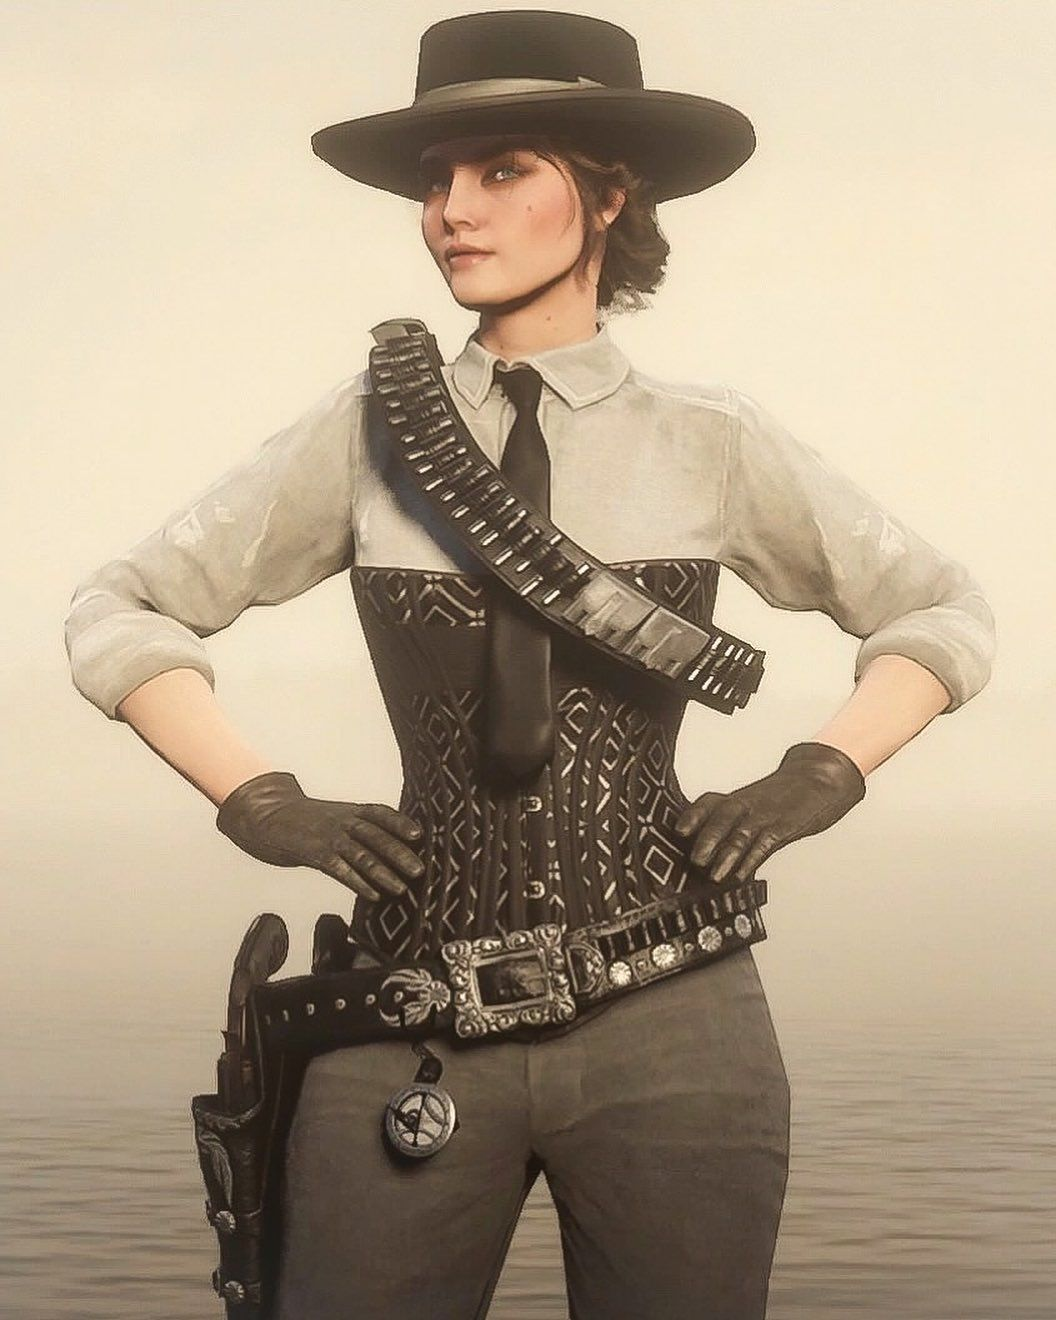 Pin By Yakov On Oye Si V Red Dead Redemption Art Red Dead Redemption Ii Red Dead Online